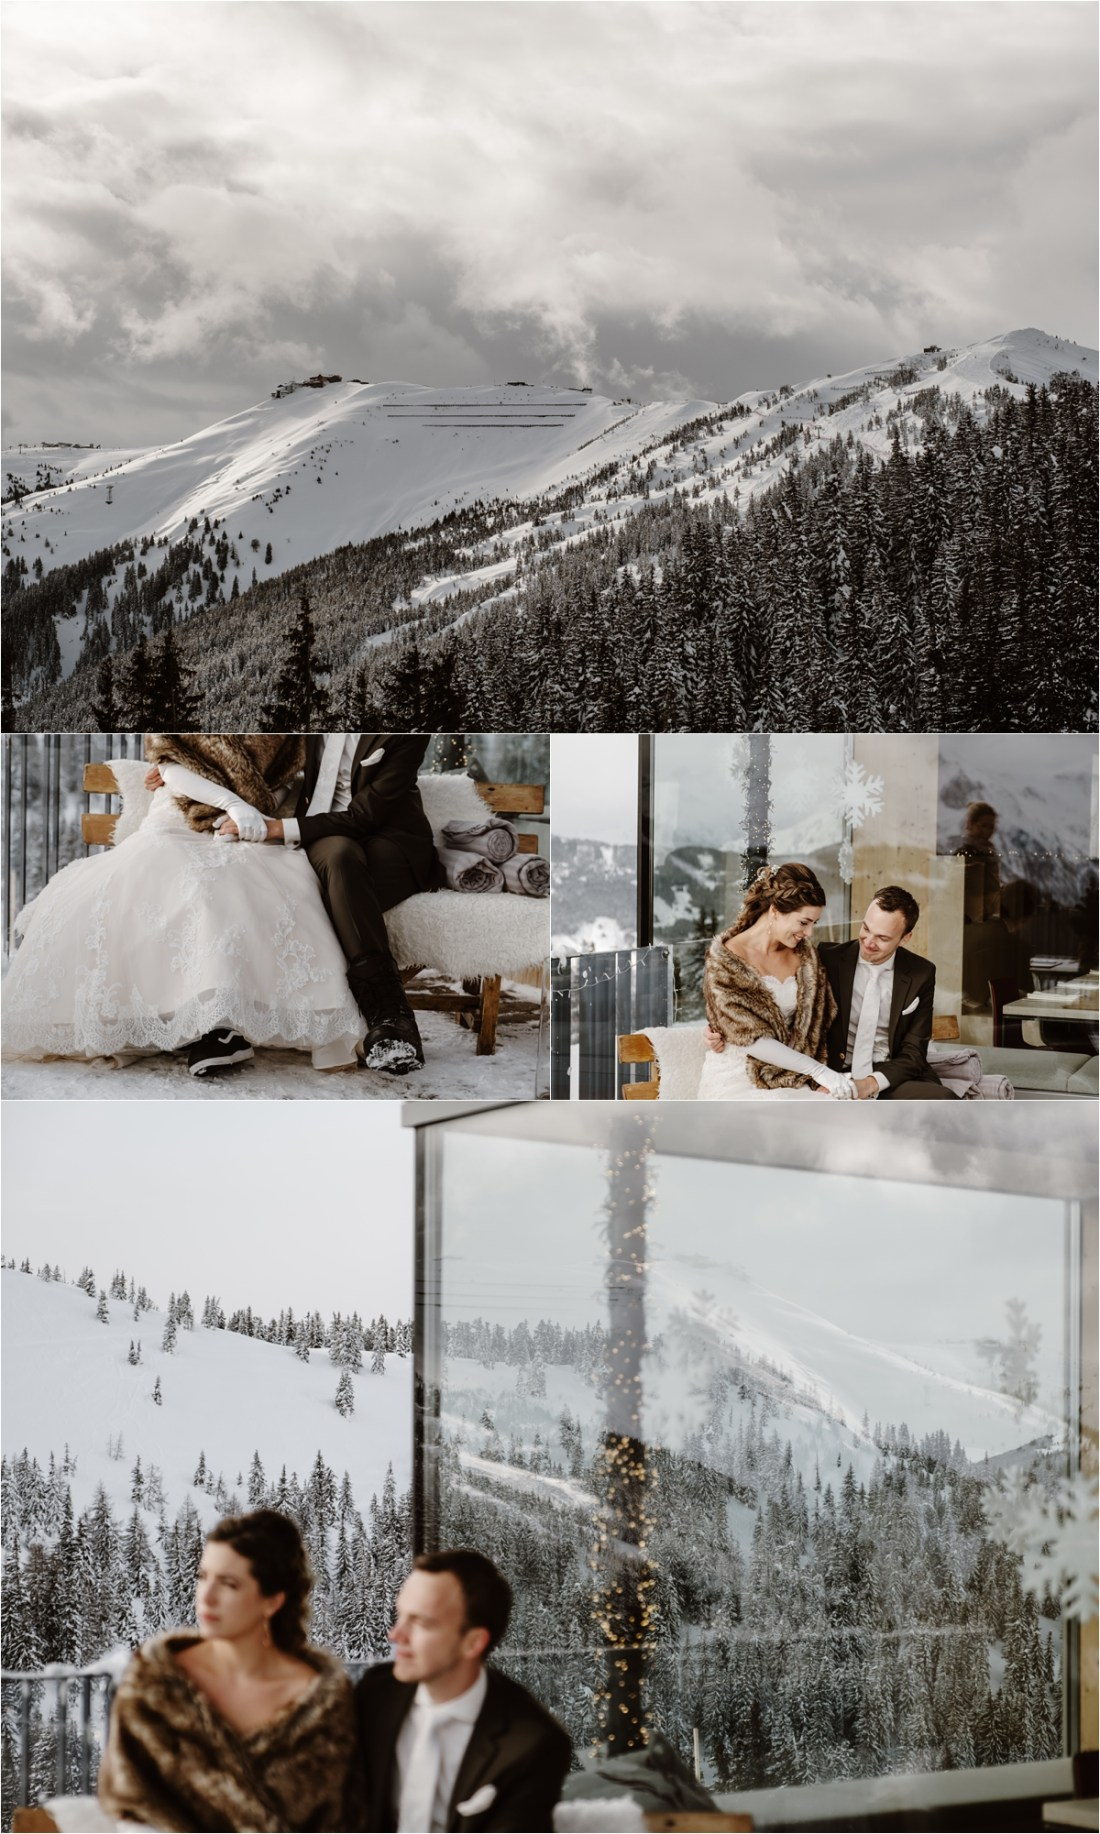 A wedding ceremony at the Schmiedhof Alm in Zell Am See by Wild Connections Photography